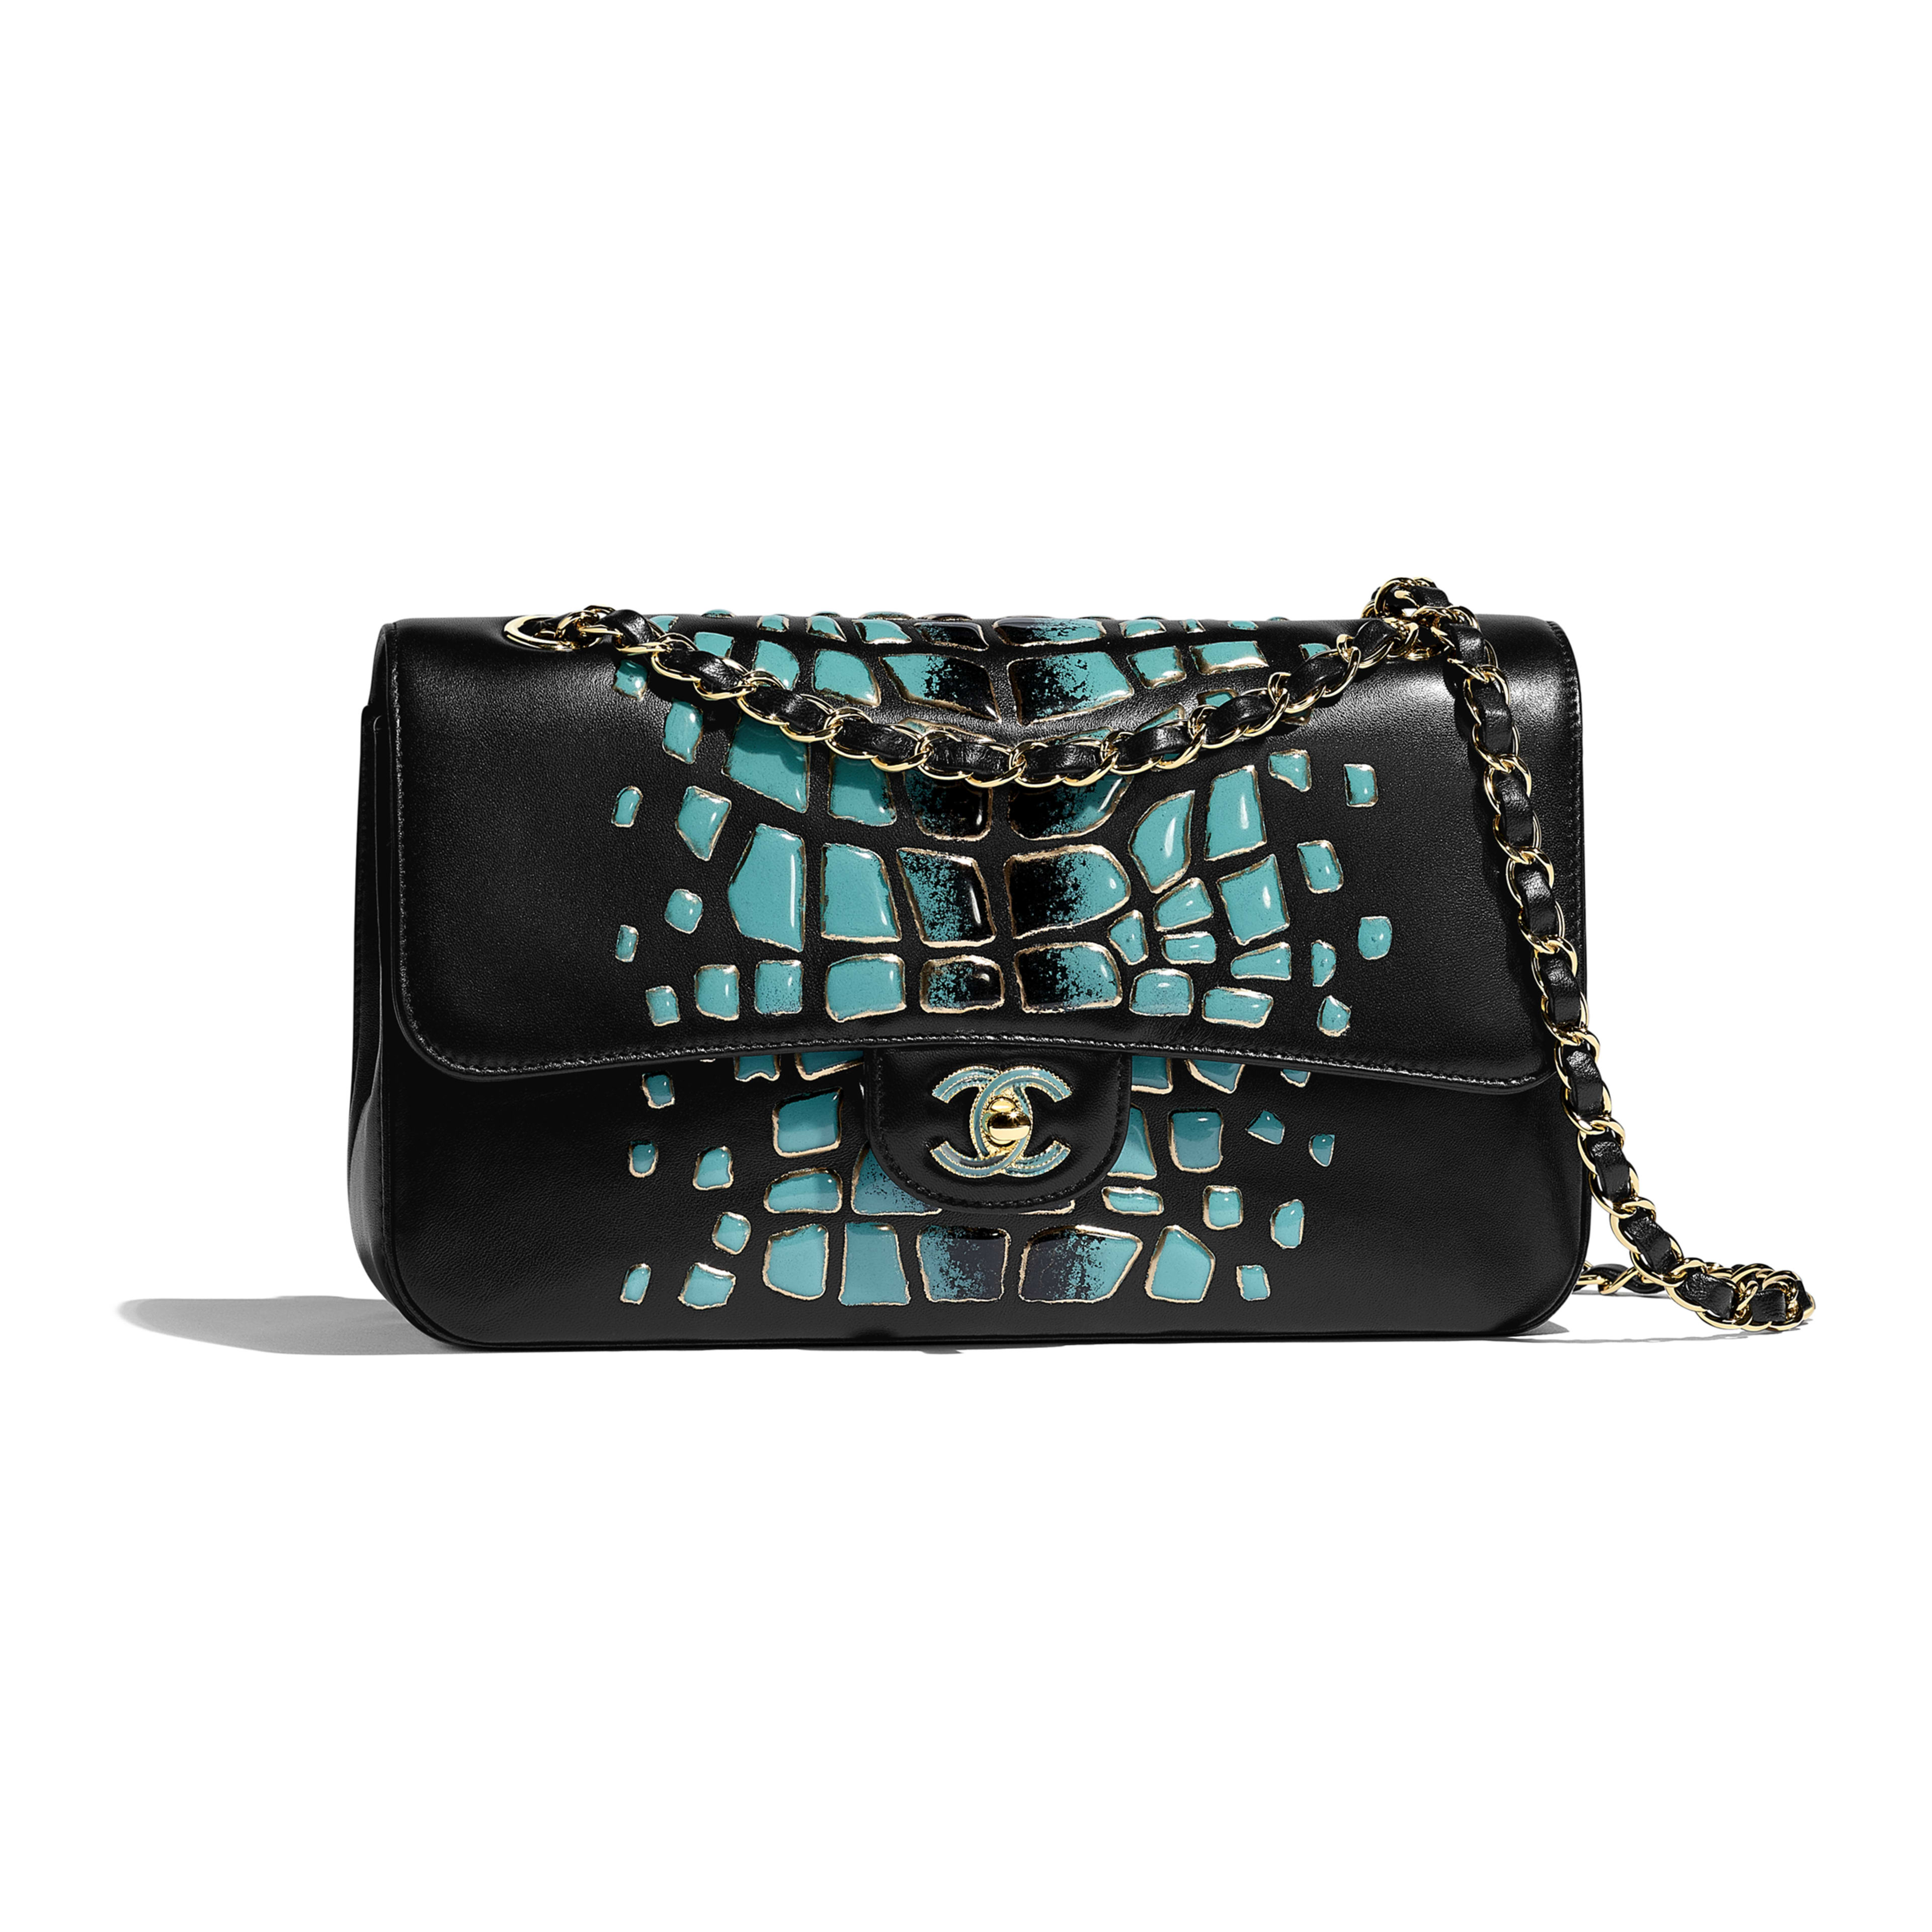 Classic Handbag - Turquoise & Black - Lambskin, Resin & Gold-Tone Metal - Default view - see full sized version